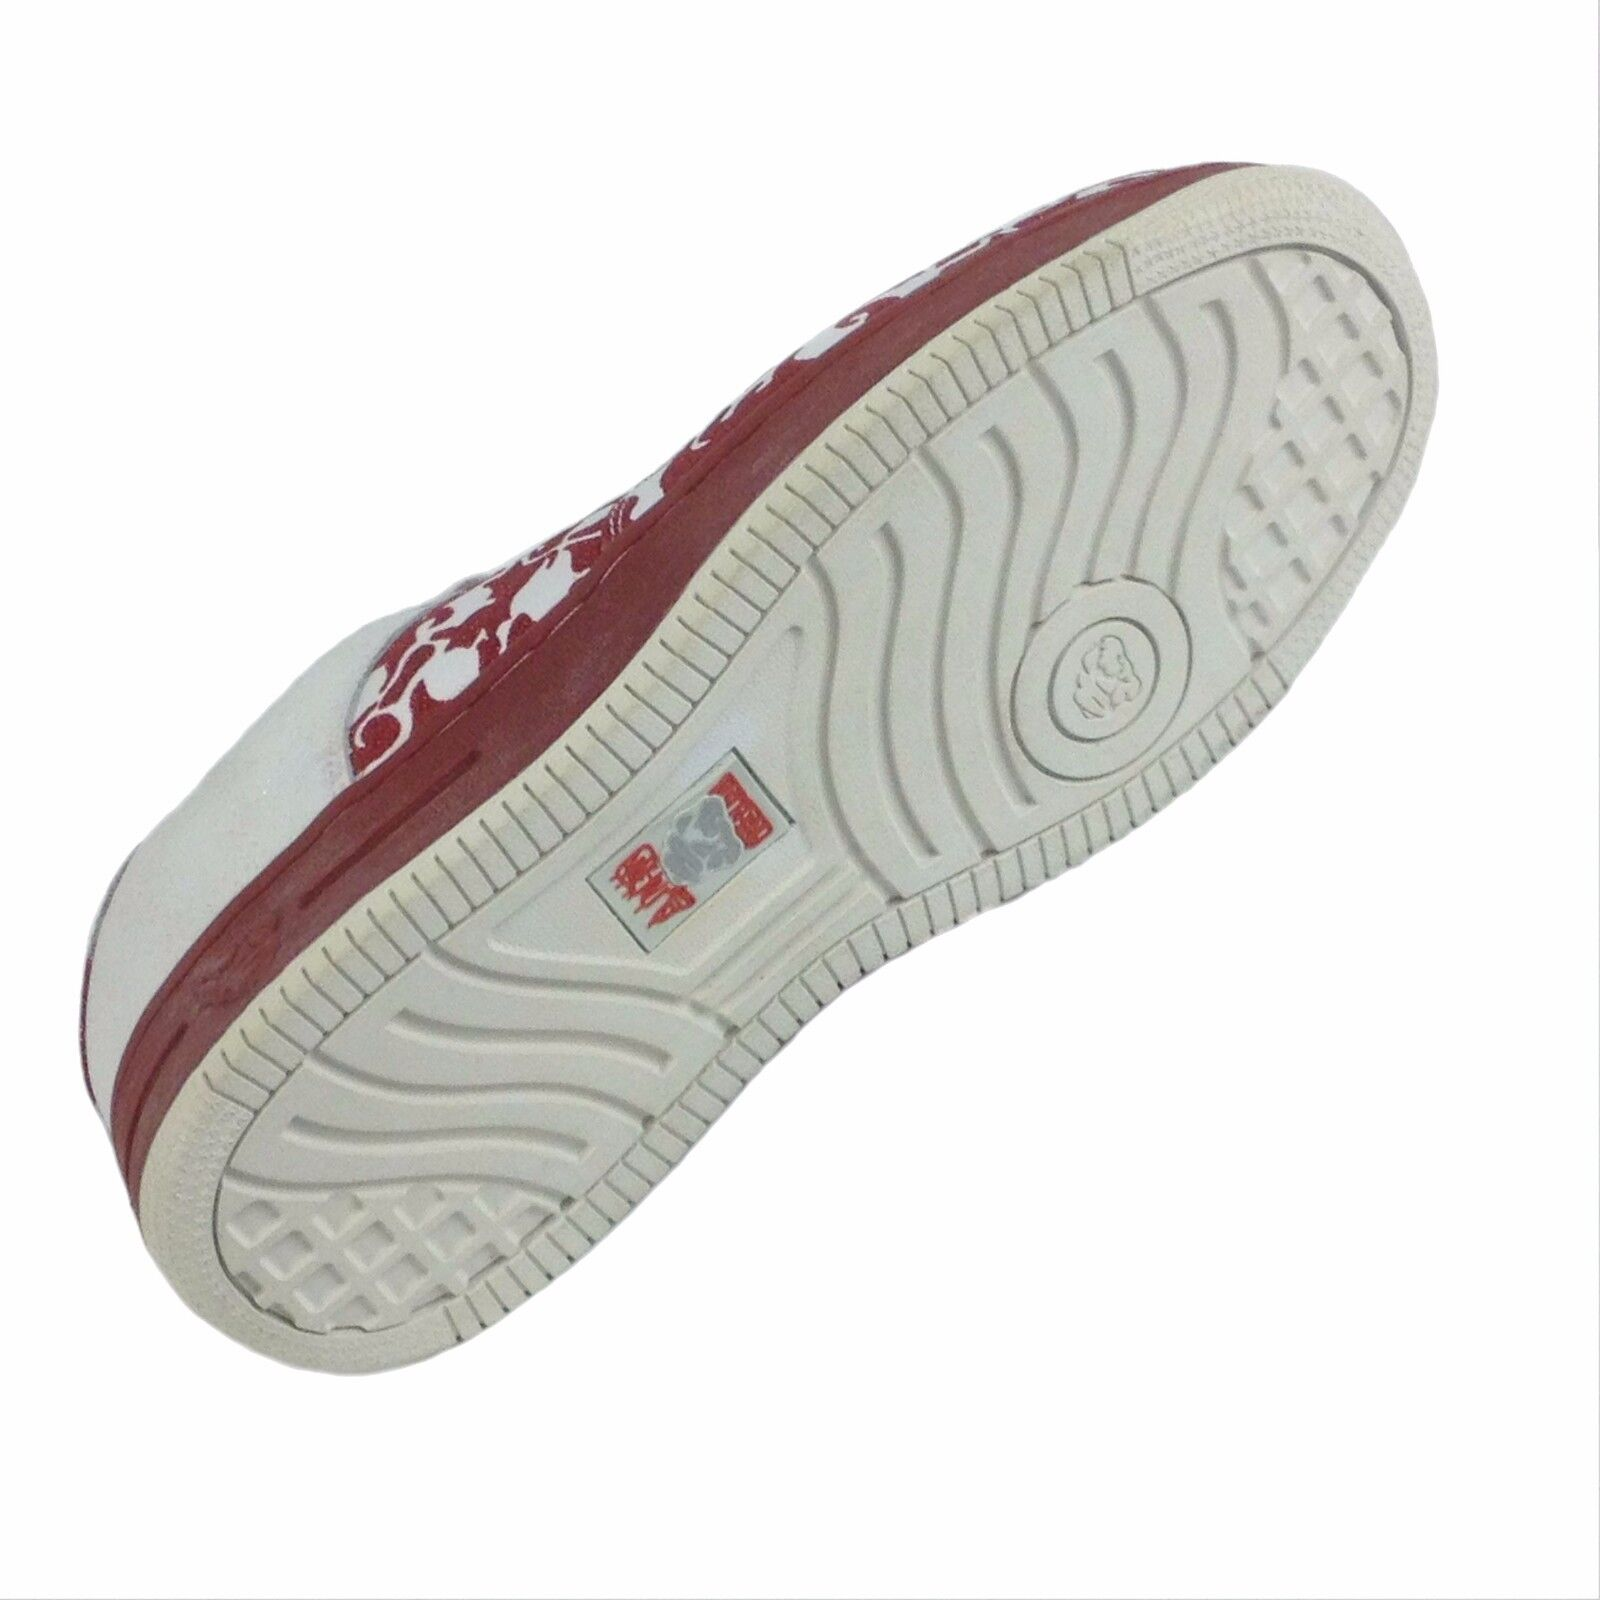 Tough City Red Ruby and White Shoes Style SN003 Size 8.5, to 12.